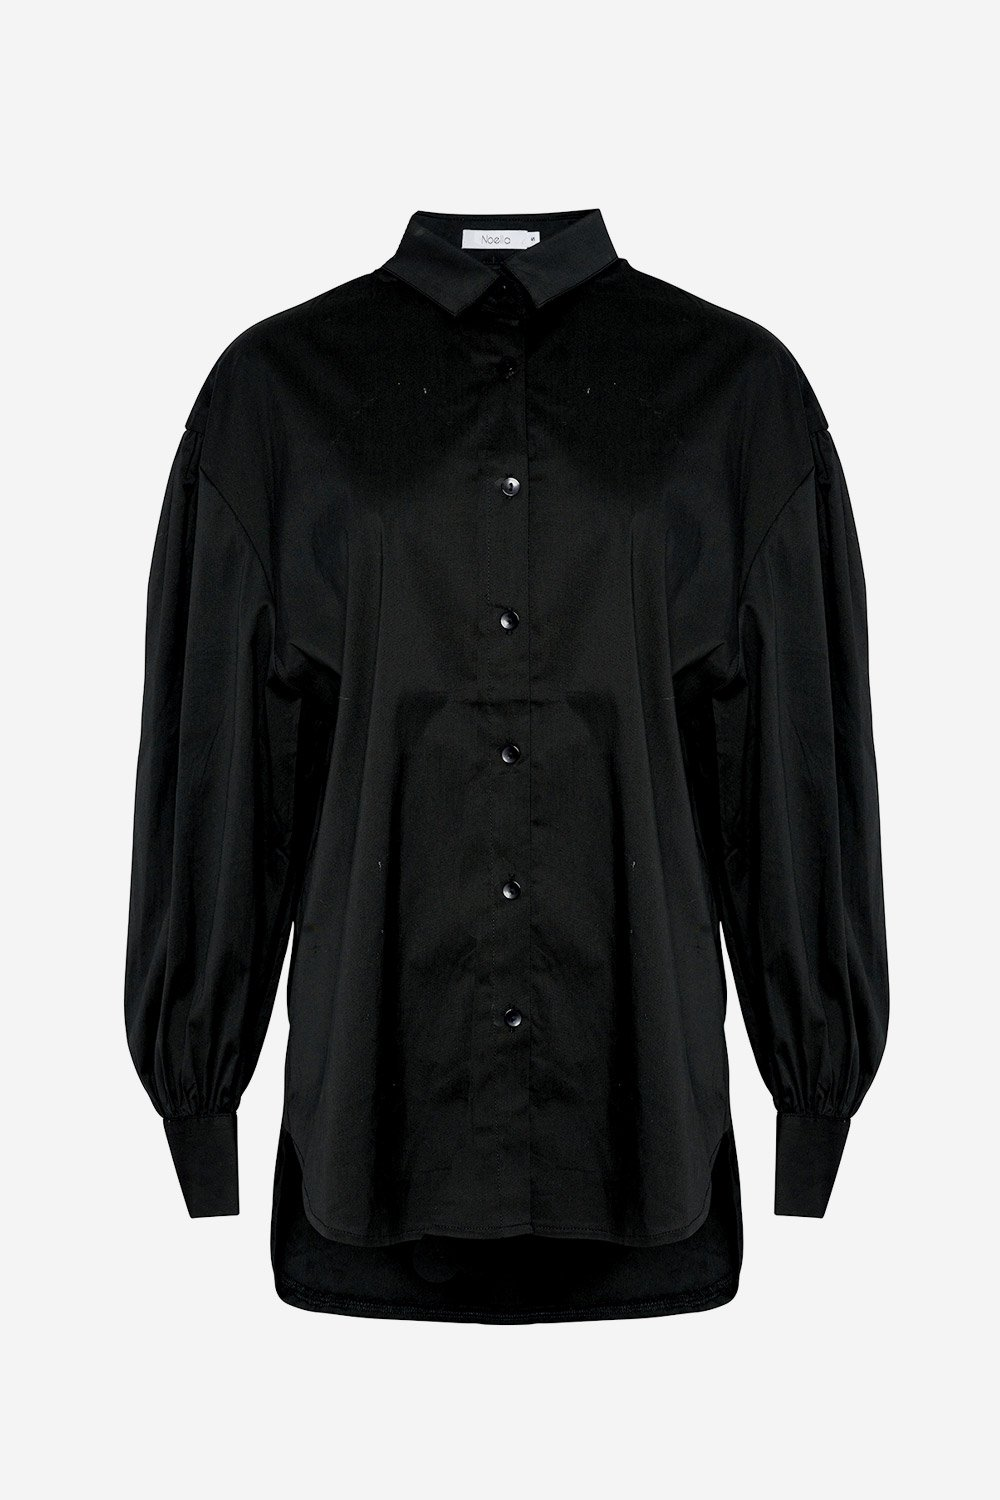 Tate Shirt, Cotton Poplin